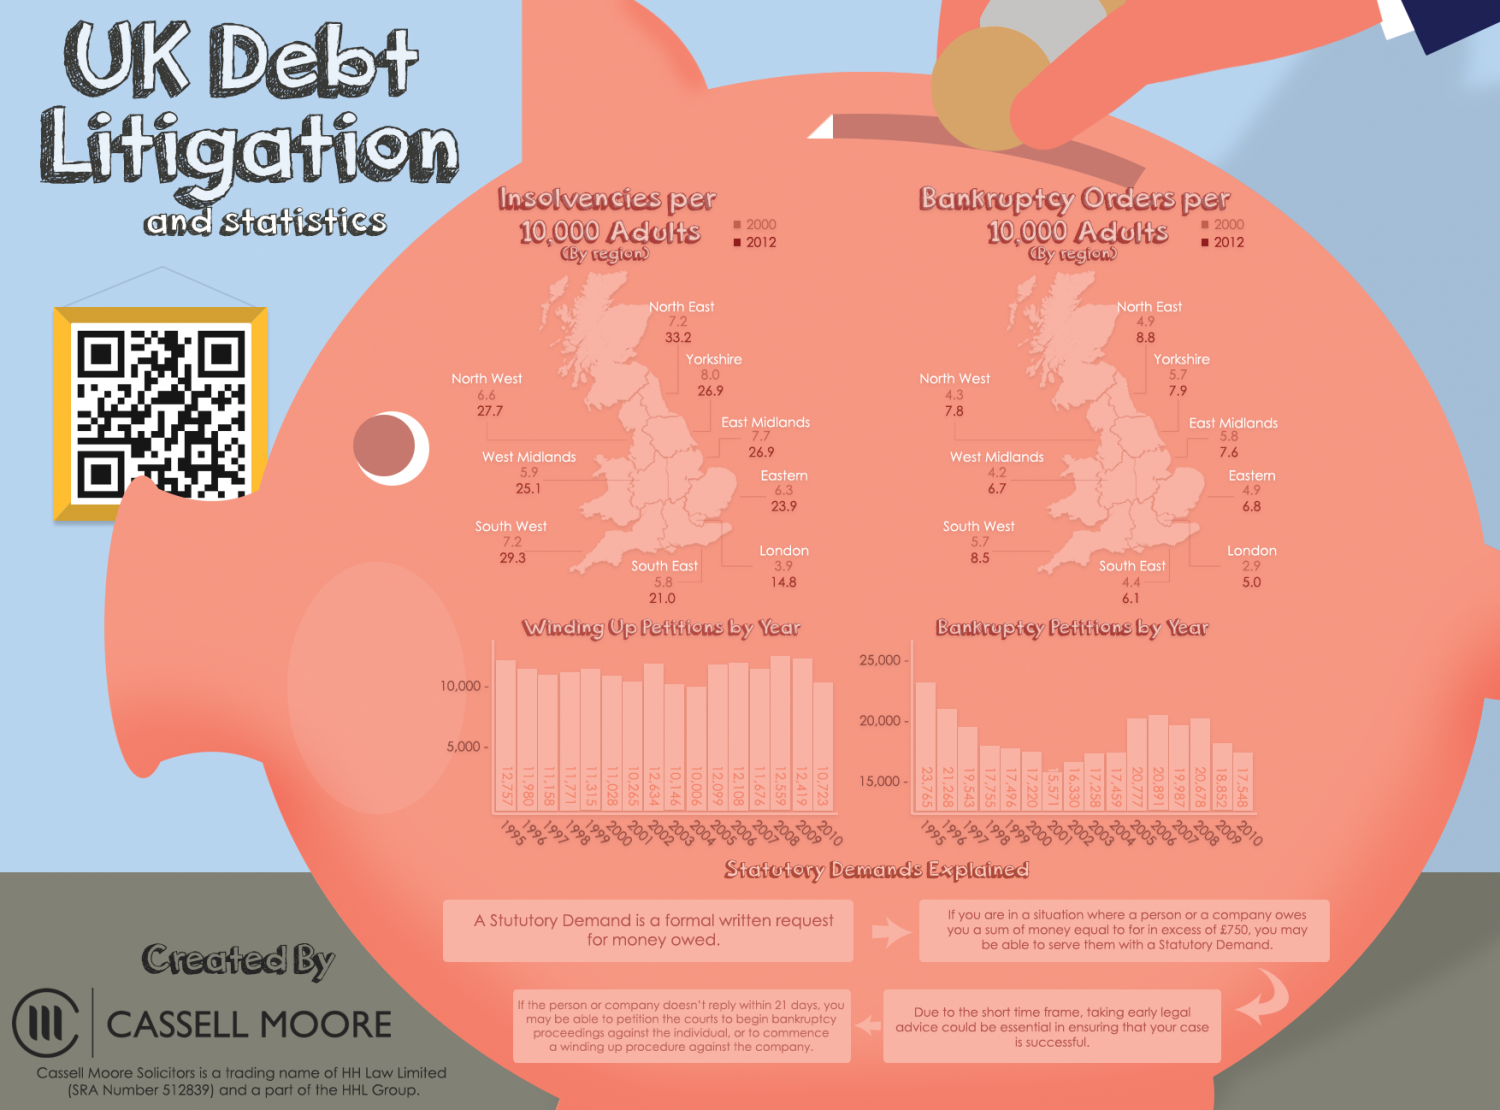 UK Debt Litigation Statistics Infographic